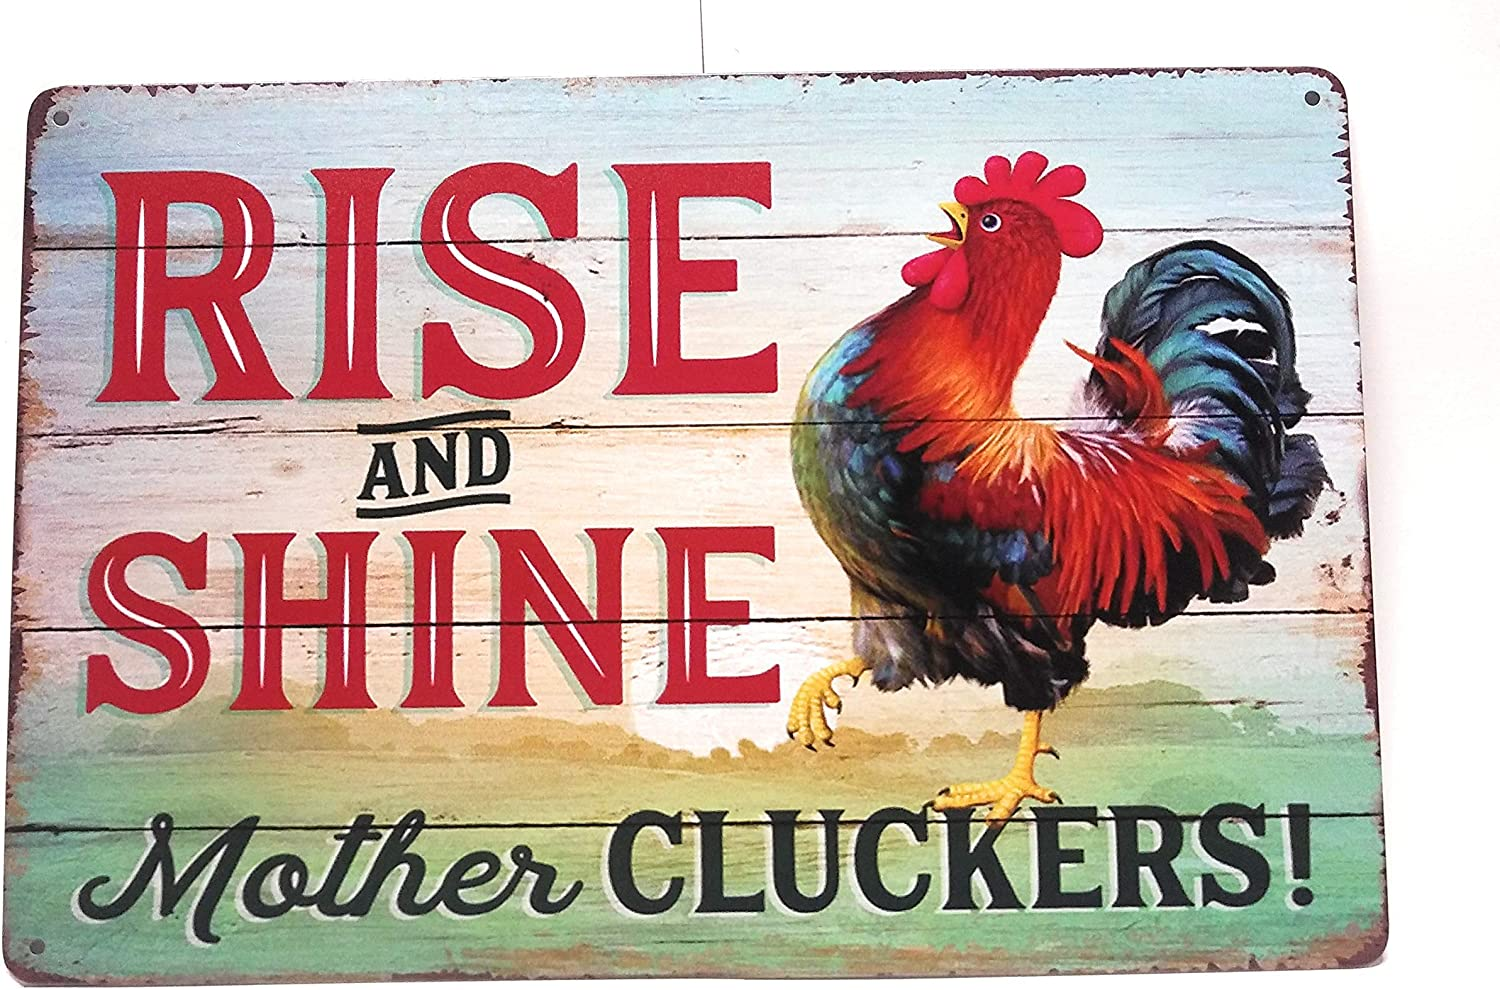 Rise And Shine Mother Cluckers Metal Tin Sign, Chicken Decor, Chicken Sign, Funny Chicken Sign, Home Decor, Bedroom Sign, 8-inch by 12-inch Sign | TSC444 |